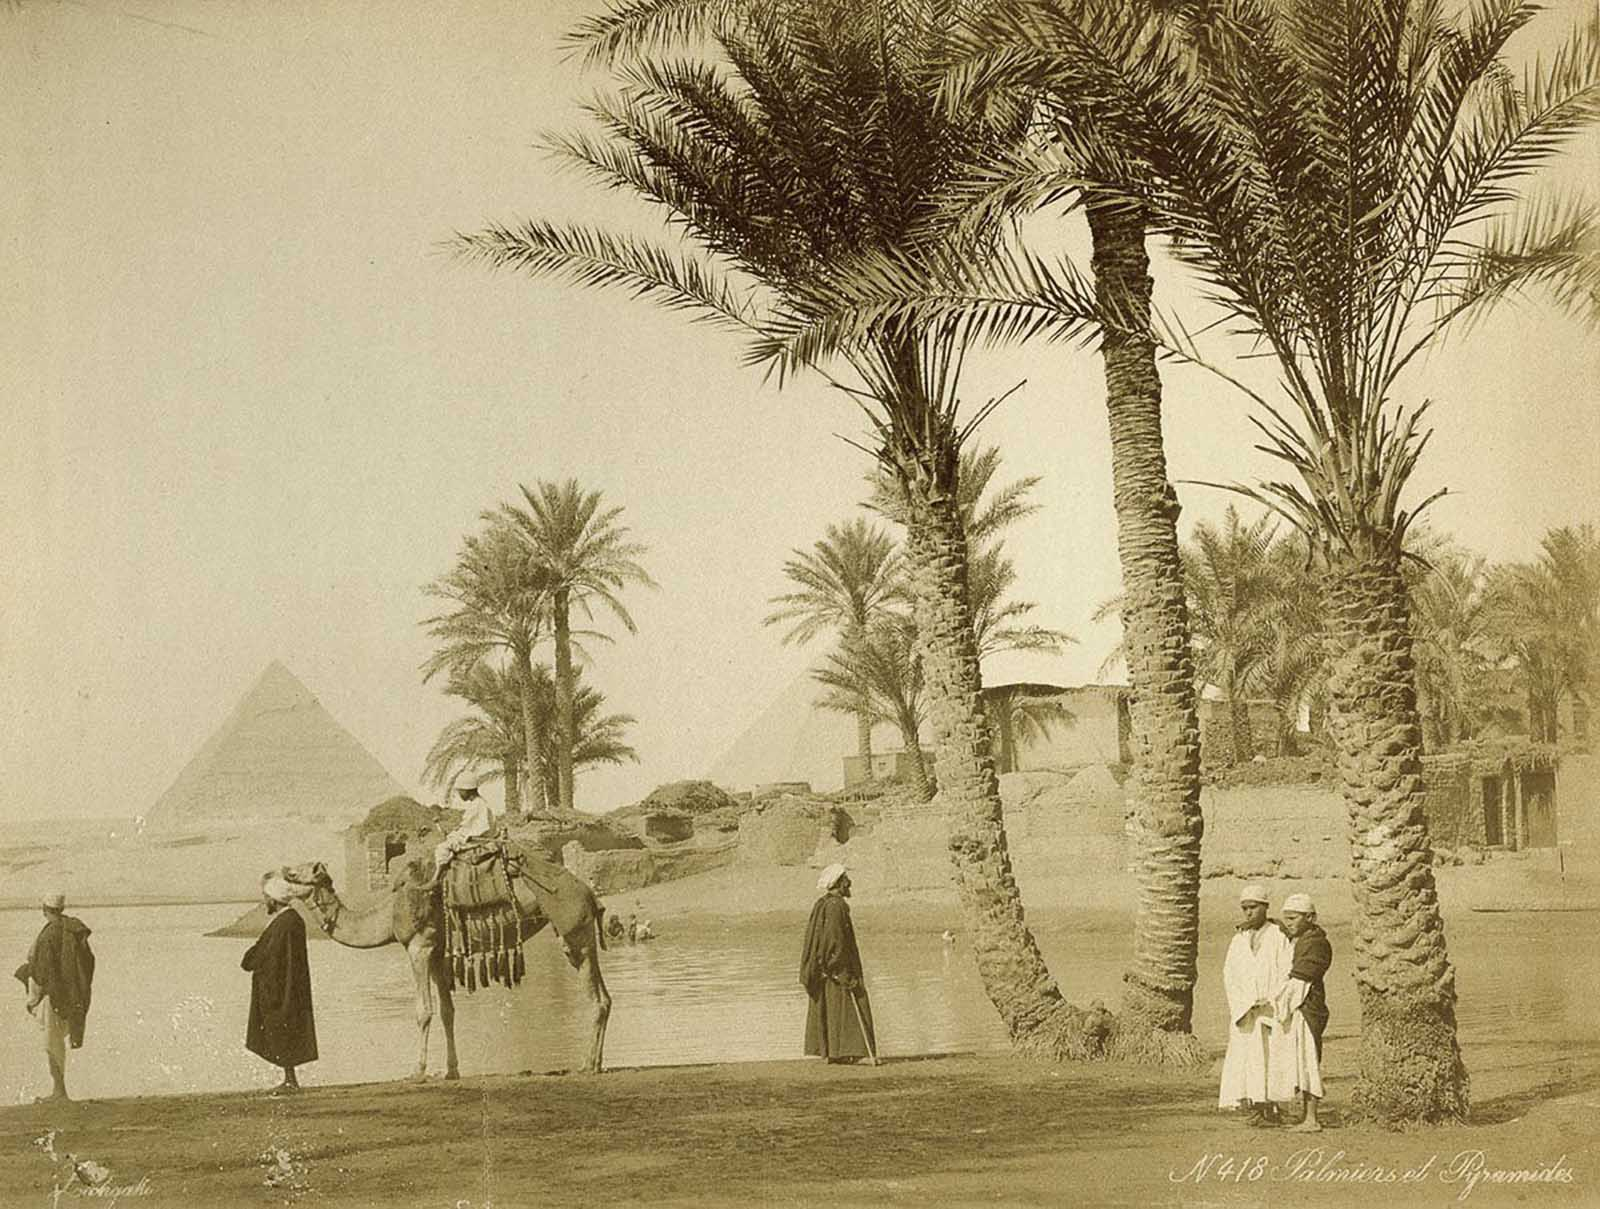 Palm grove near the pyramids.